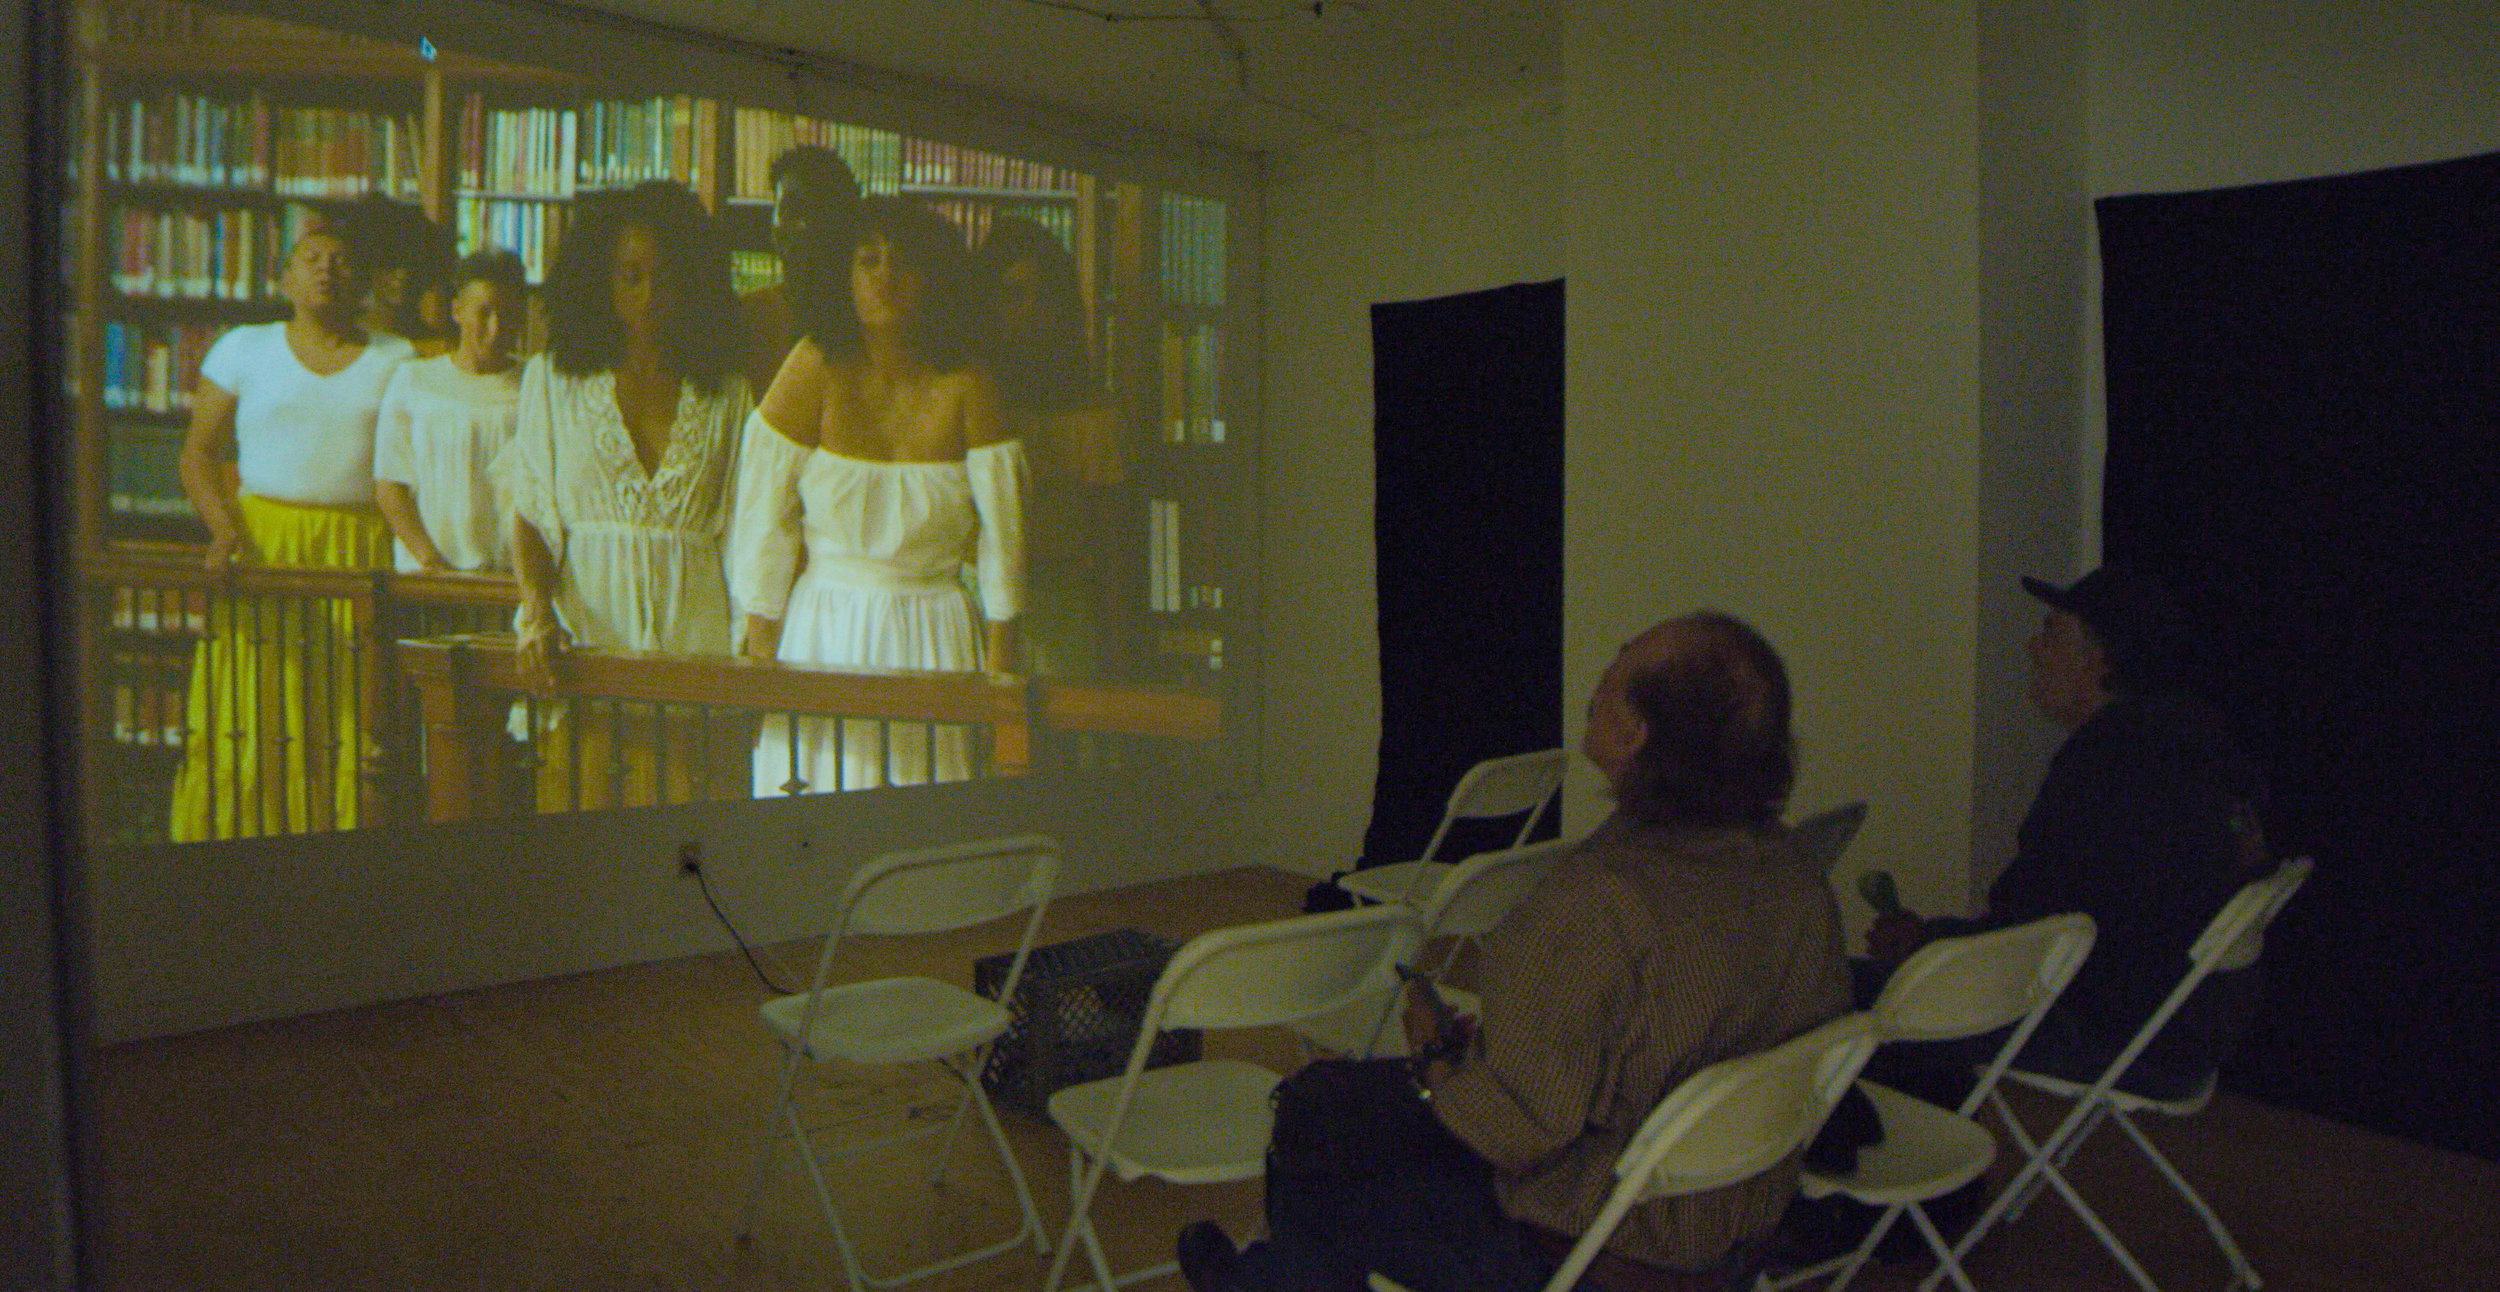 studio space I - screening Carolina Caycedo's Apparitions video during BRSArtsFestival 2019